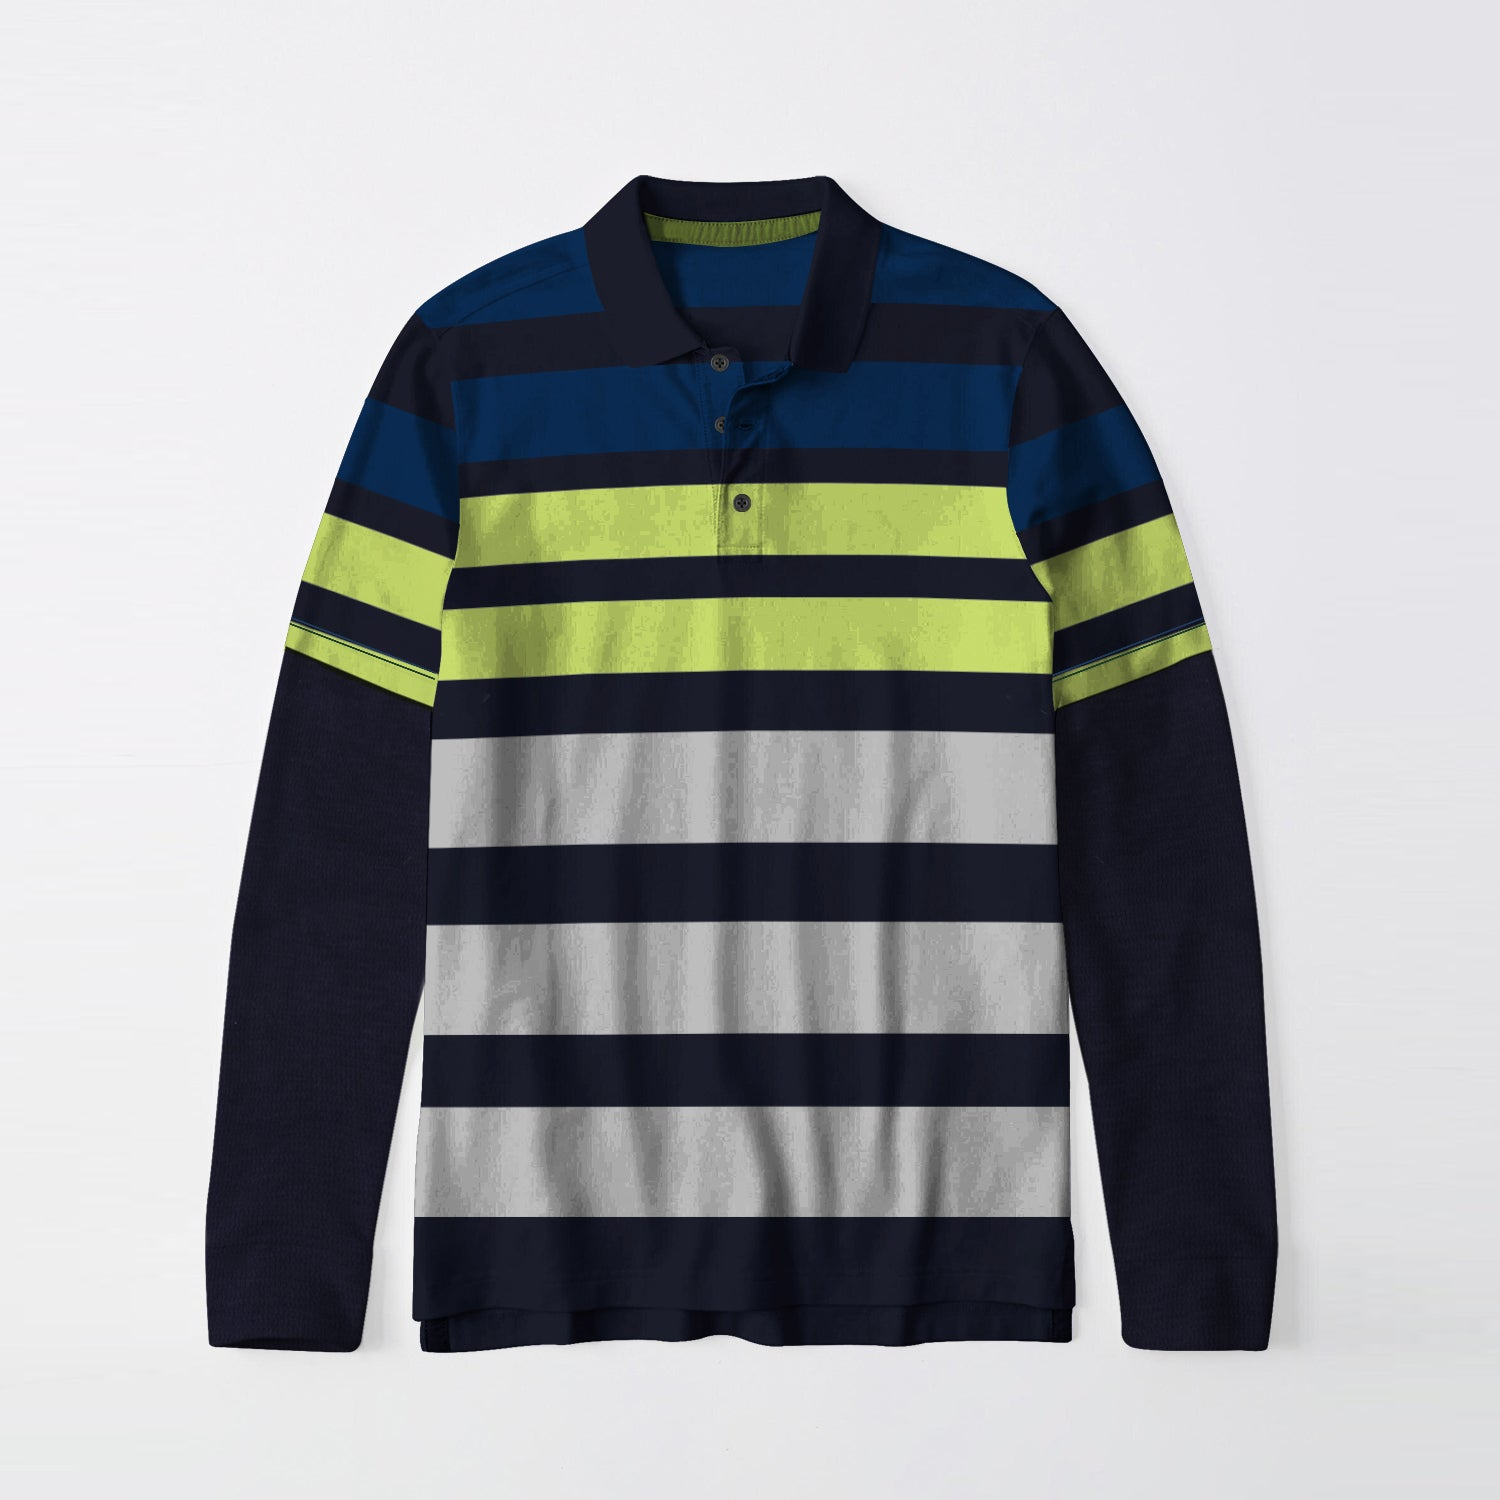 Next Single Jersey Long Sleeve Polo Shirt For Men-Navy with Grey & Green Stripe-BE9400